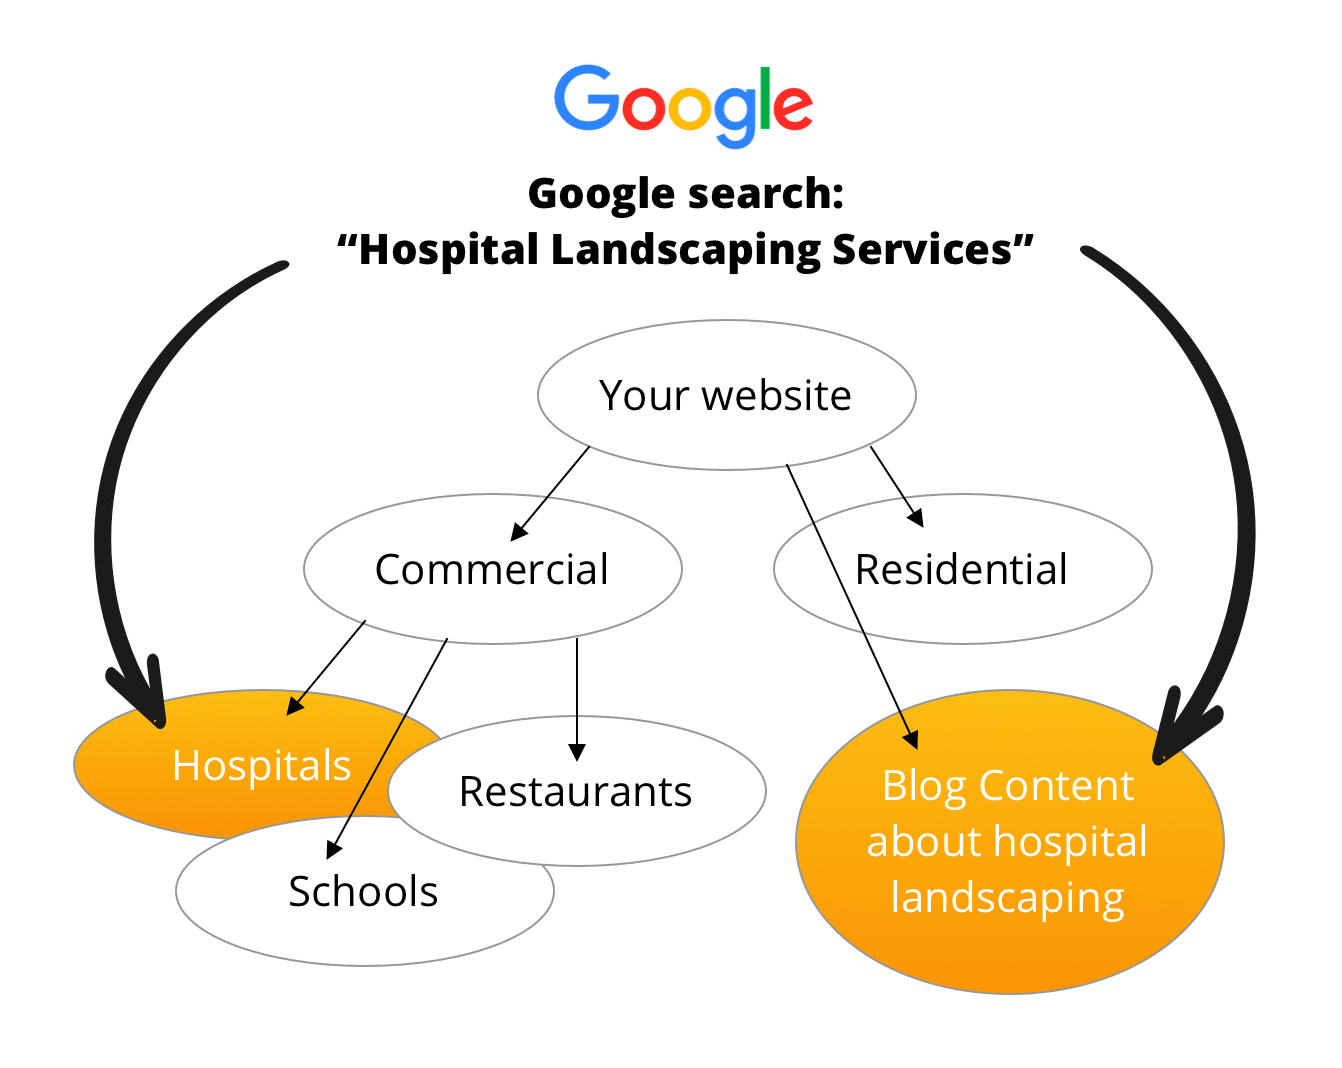 search-query-to-landing-page-content-results